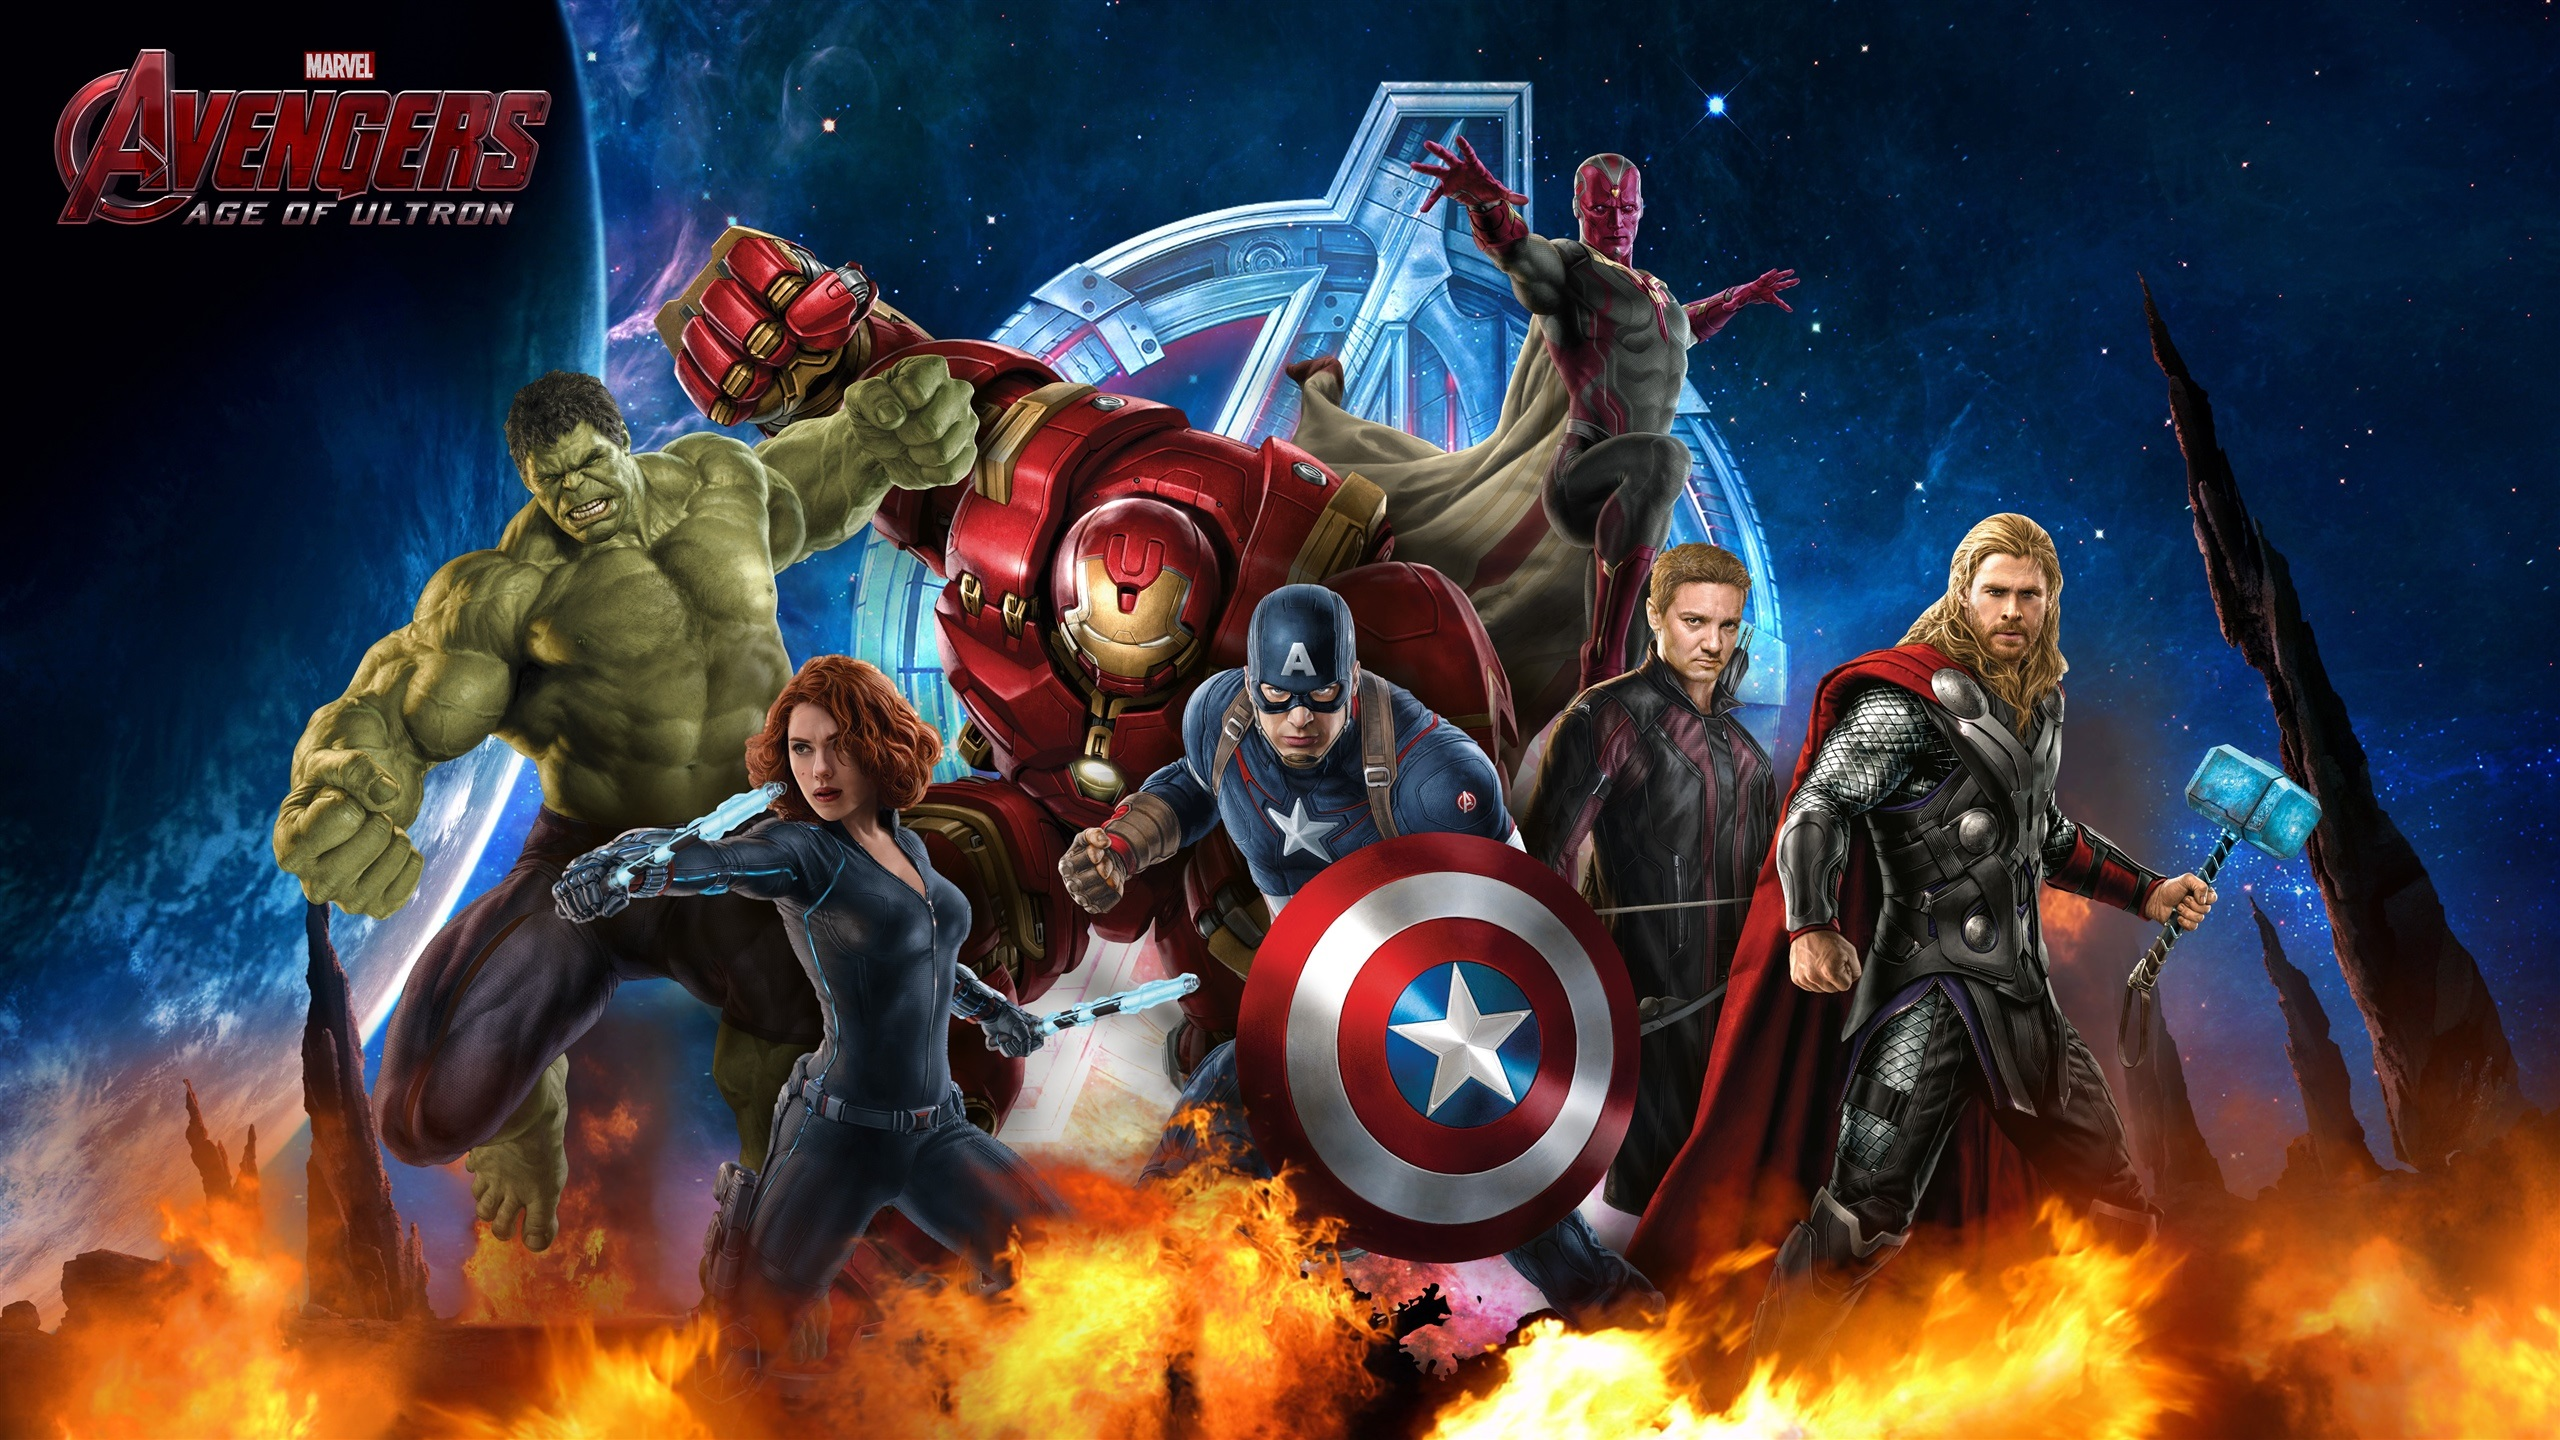 Wallpaper Avengers Age Of Ultron Hd 2560x1440 Qhd Picture Image